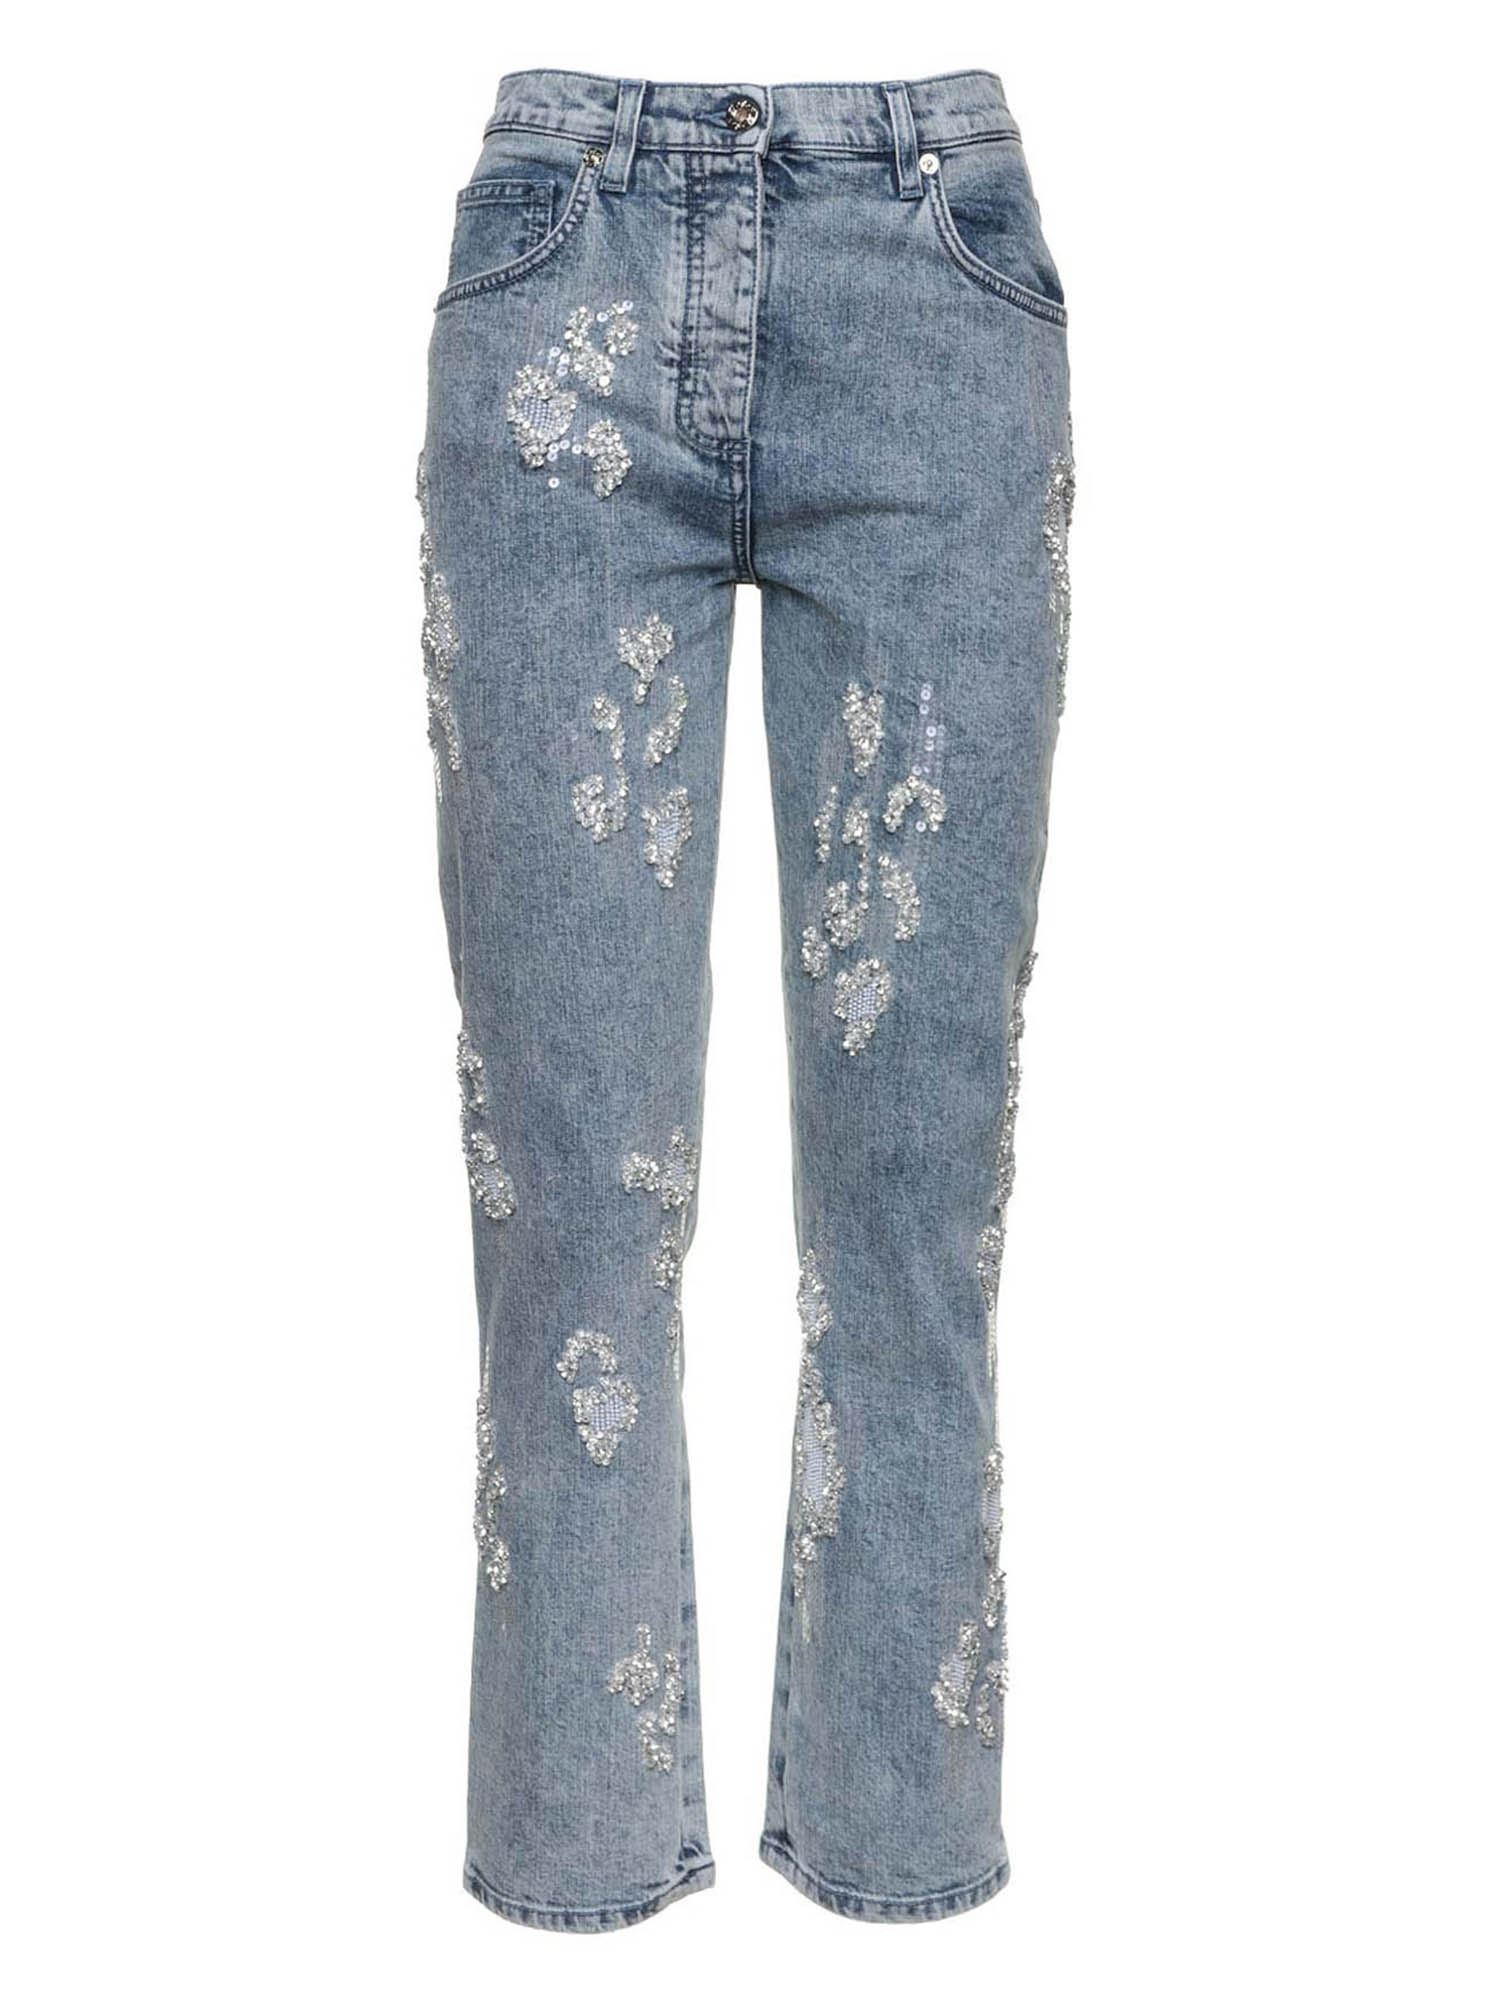 Blumarine RIPPED JEANS IN LIGHT BLUE